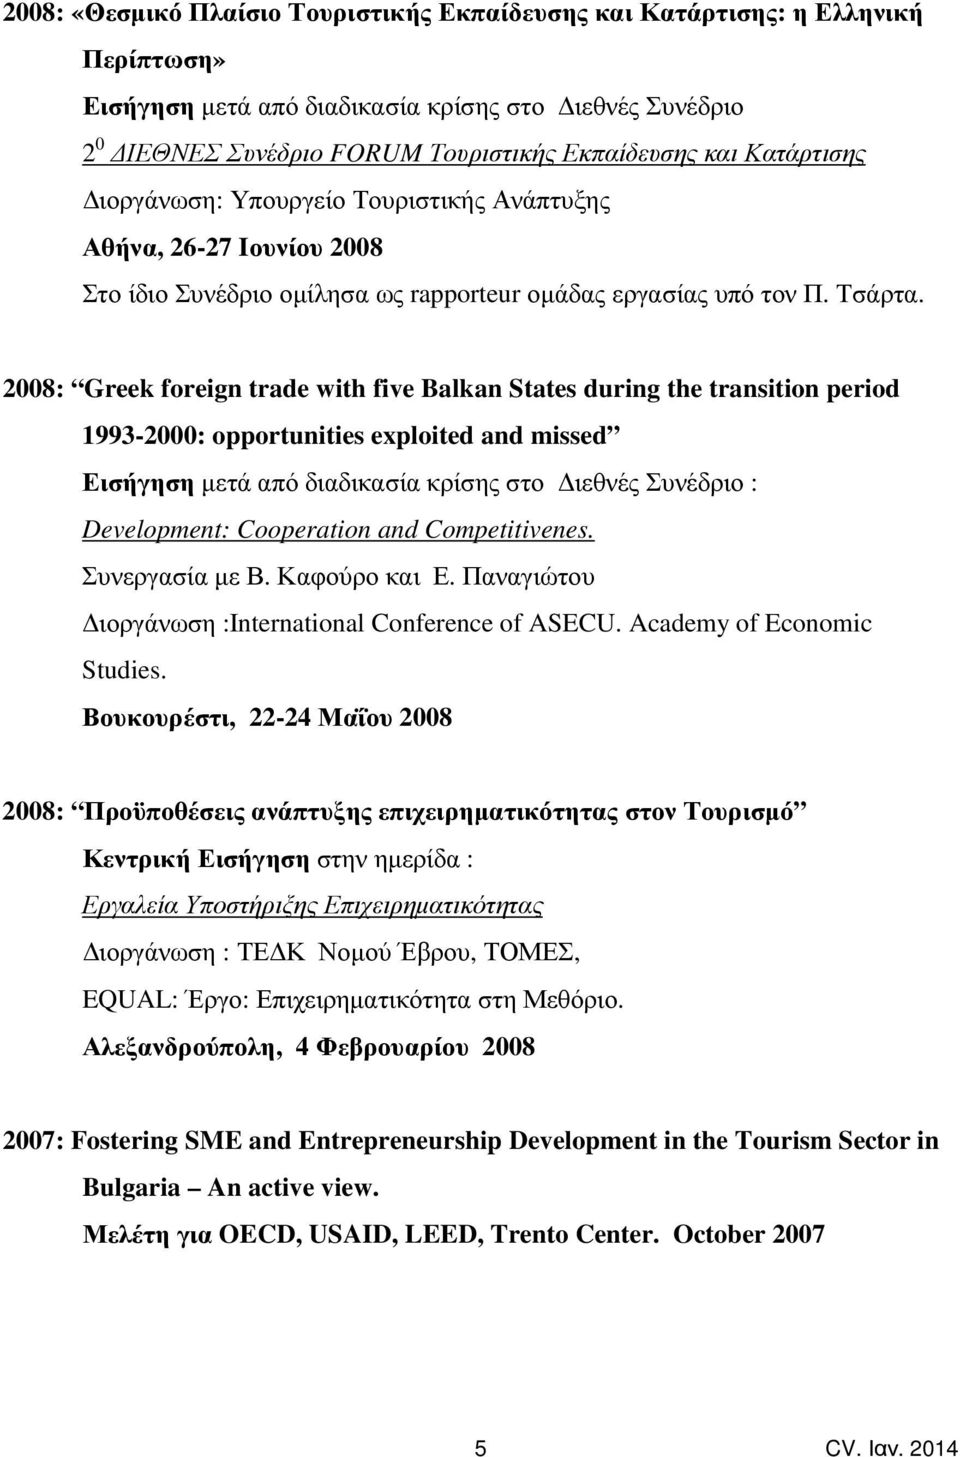 2008: Greek foreign trade with five Balkan States during the transition period 1993-2000: opportunities exploited and missed Εισήγηση µετά από διαδικασία κρίσης στο ιεθνές Συνέδριο : Development: